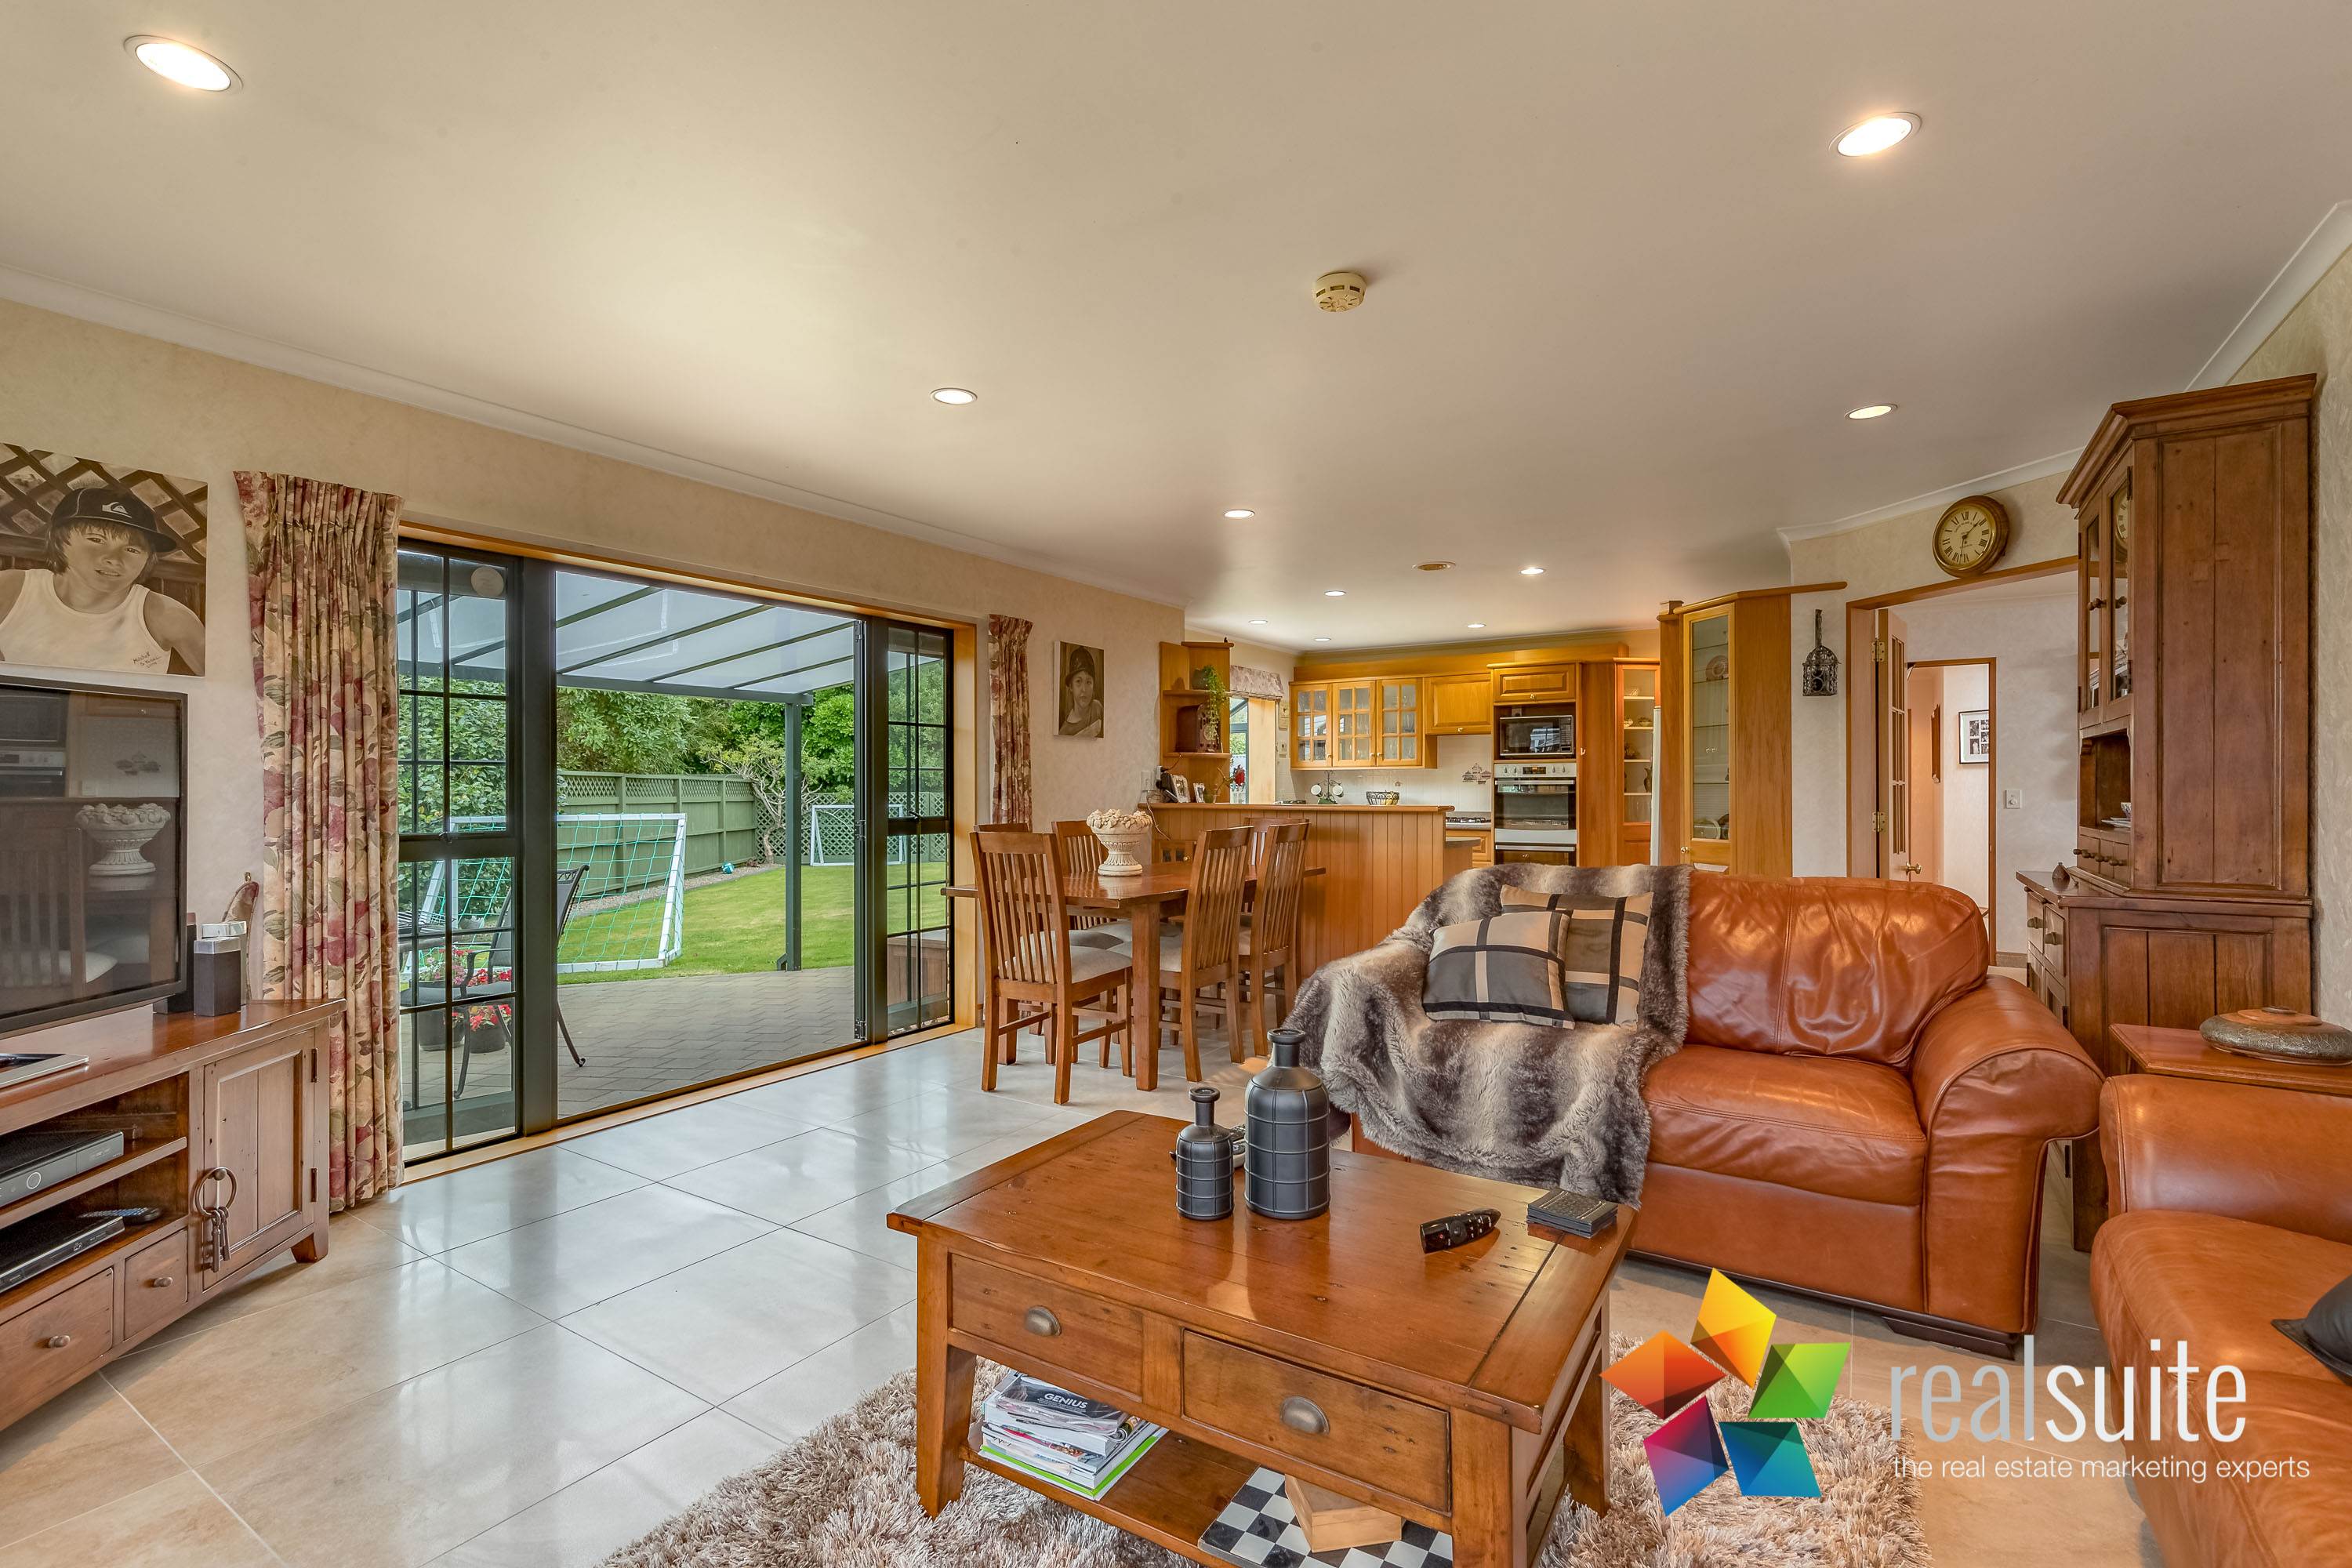 37,39 Rossiter Avenue, Lower Hutt 4541